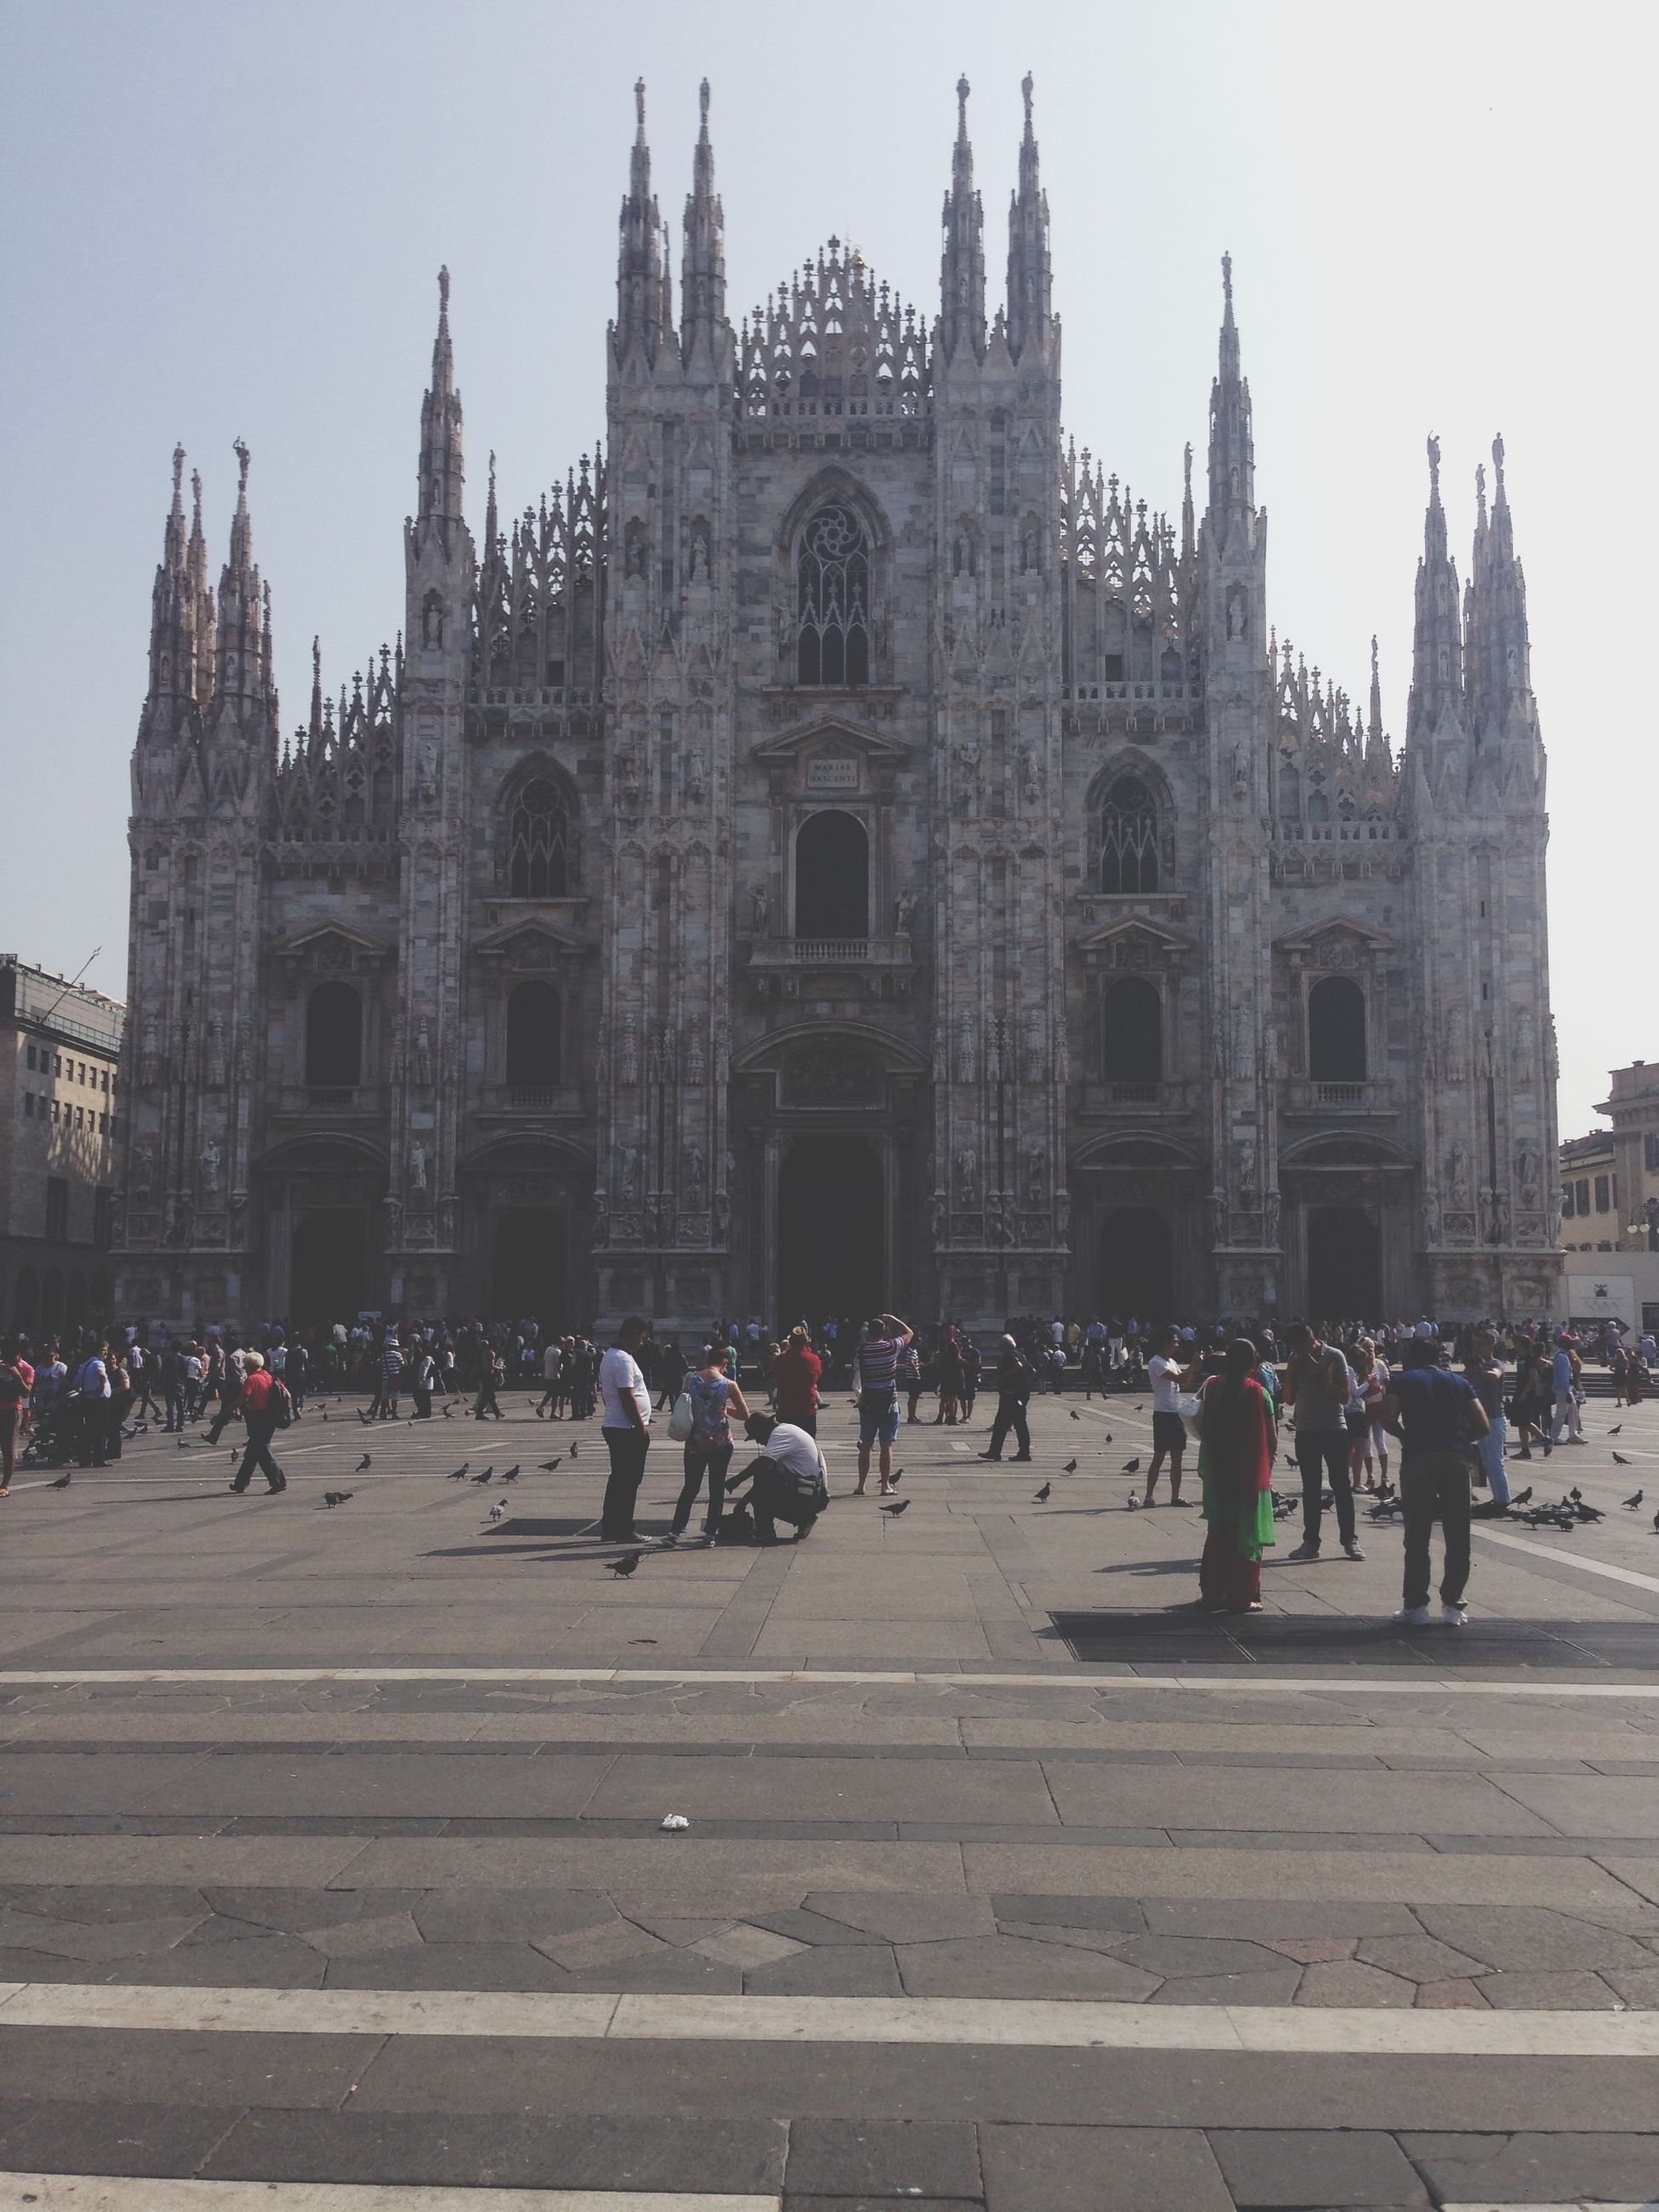 architecture, building exterior, built structure, large group of people, famous place, tourism, travel destinations, place of worship, history, religion, travel, international landmark, spirituality, cathedral, church, facade, tourist, capital cities